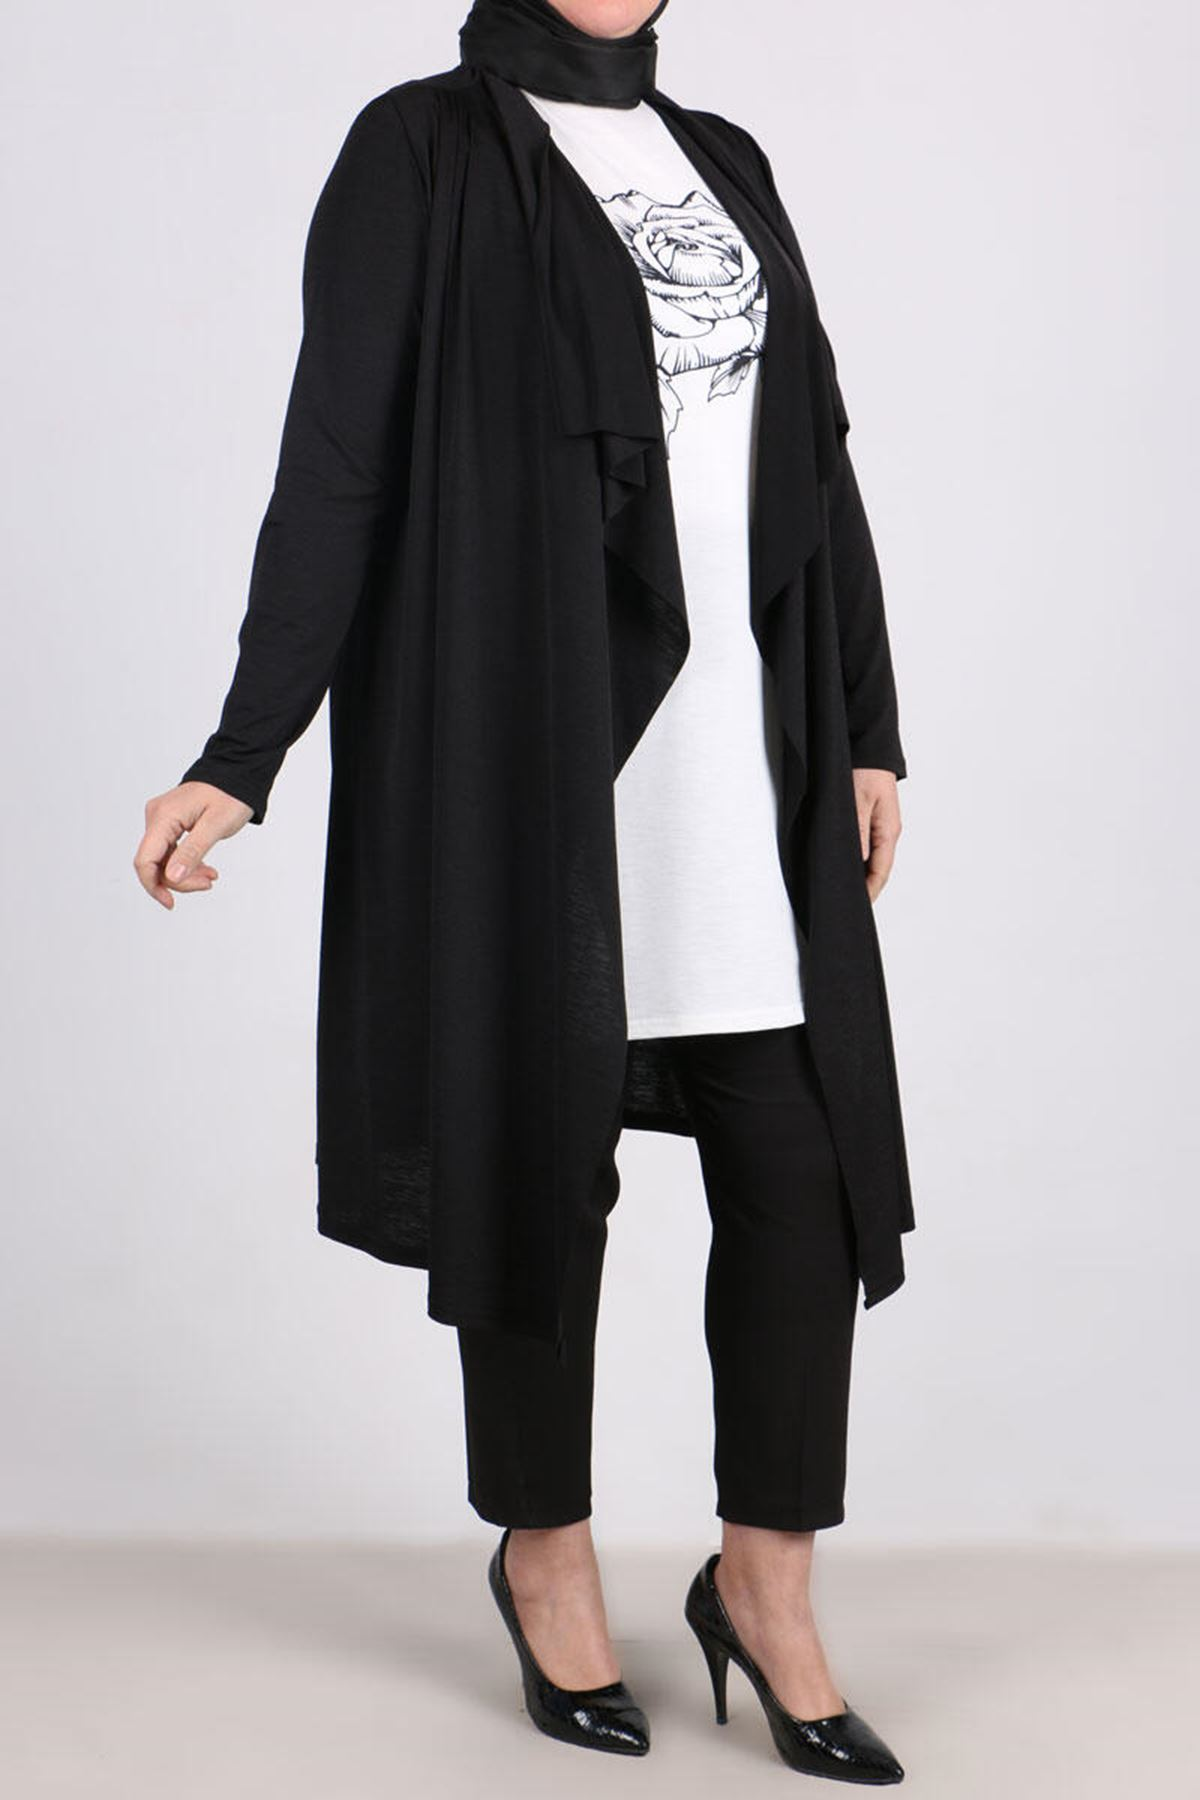 7109 Plus Size Two Piece Set with Tunic and Jacket- Black